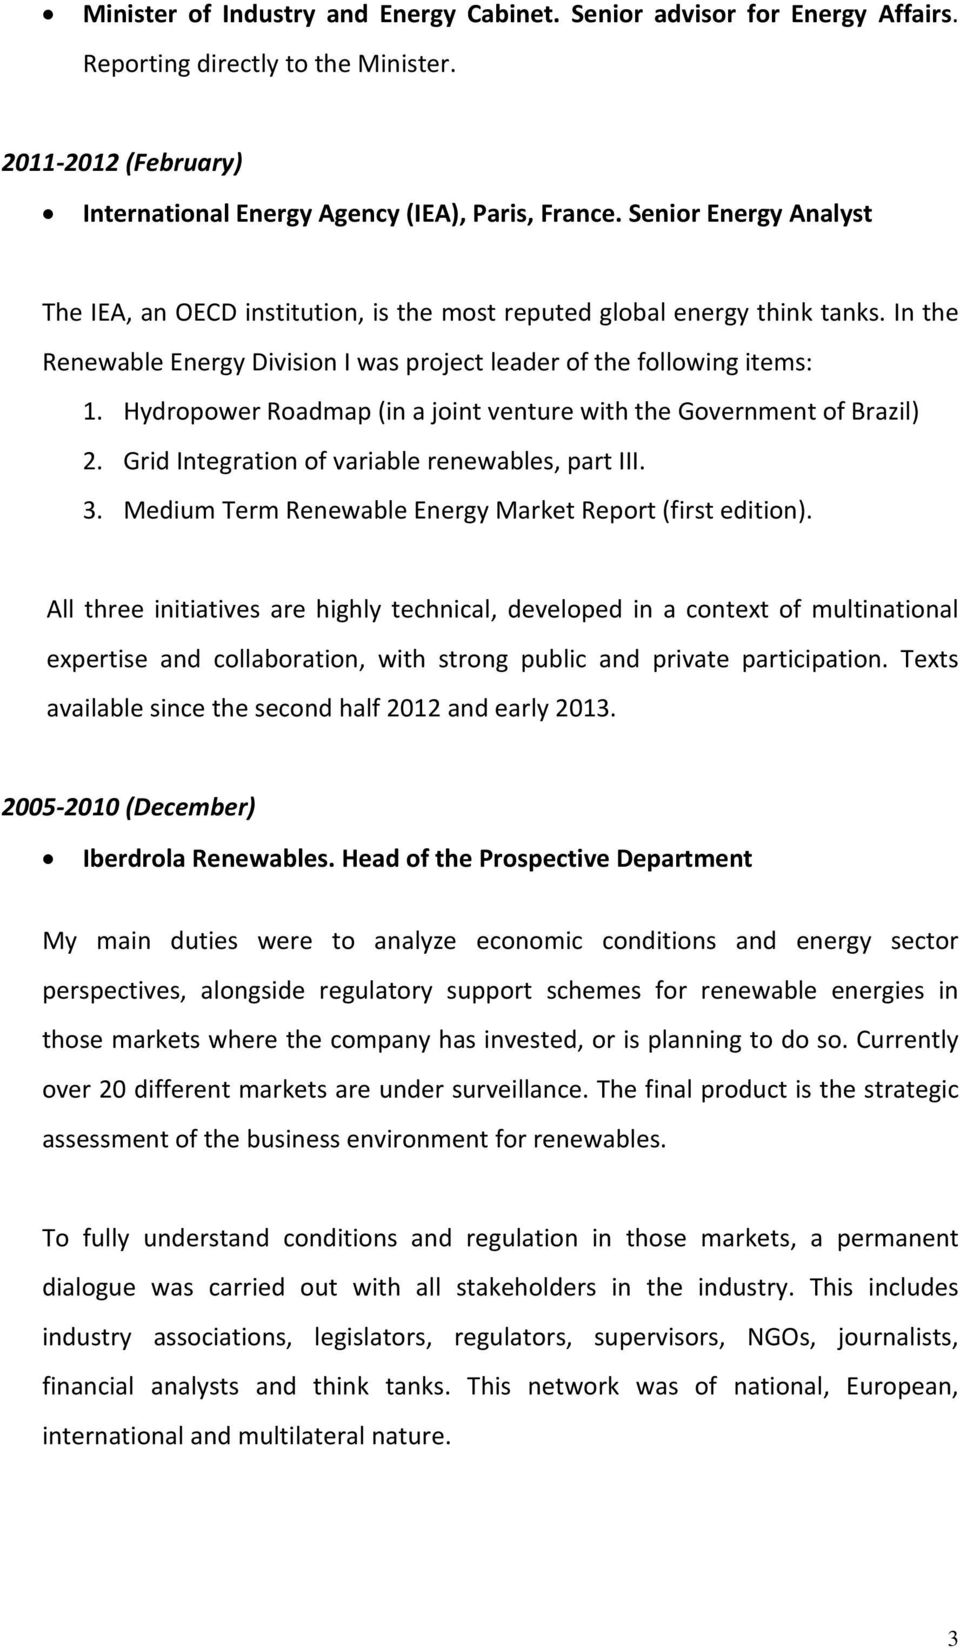 Hydropower Roadmap (in a joint venture with the Government of Brazil) 2. Grid Integration of variable renewables, part III. 3. Medium Term Renewable Energy Market Report (first edition).